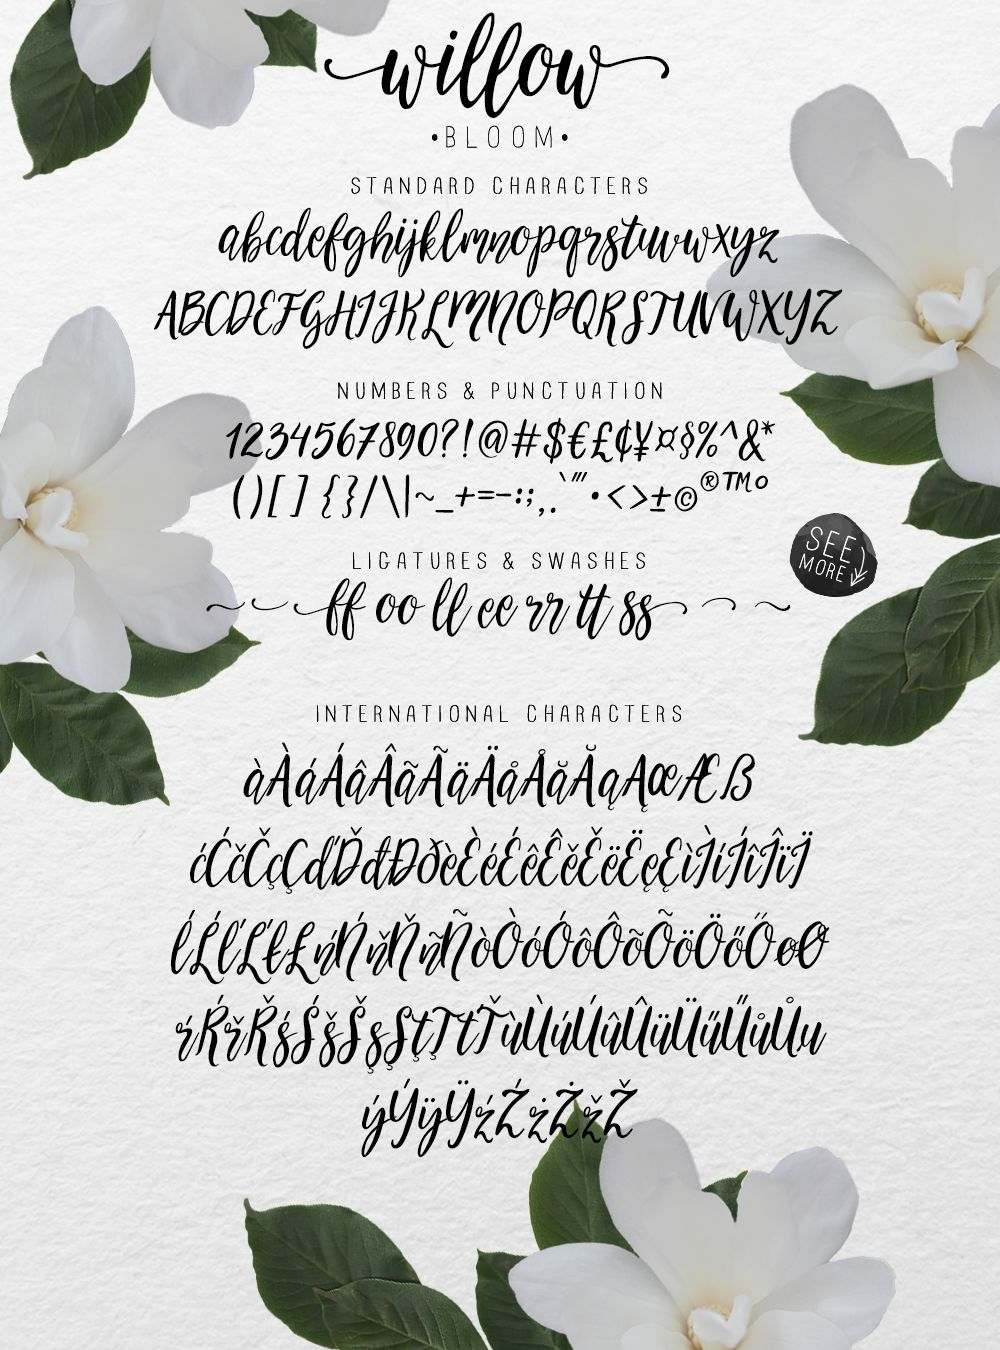 Calligraphy font willow bloom by skyladesign on